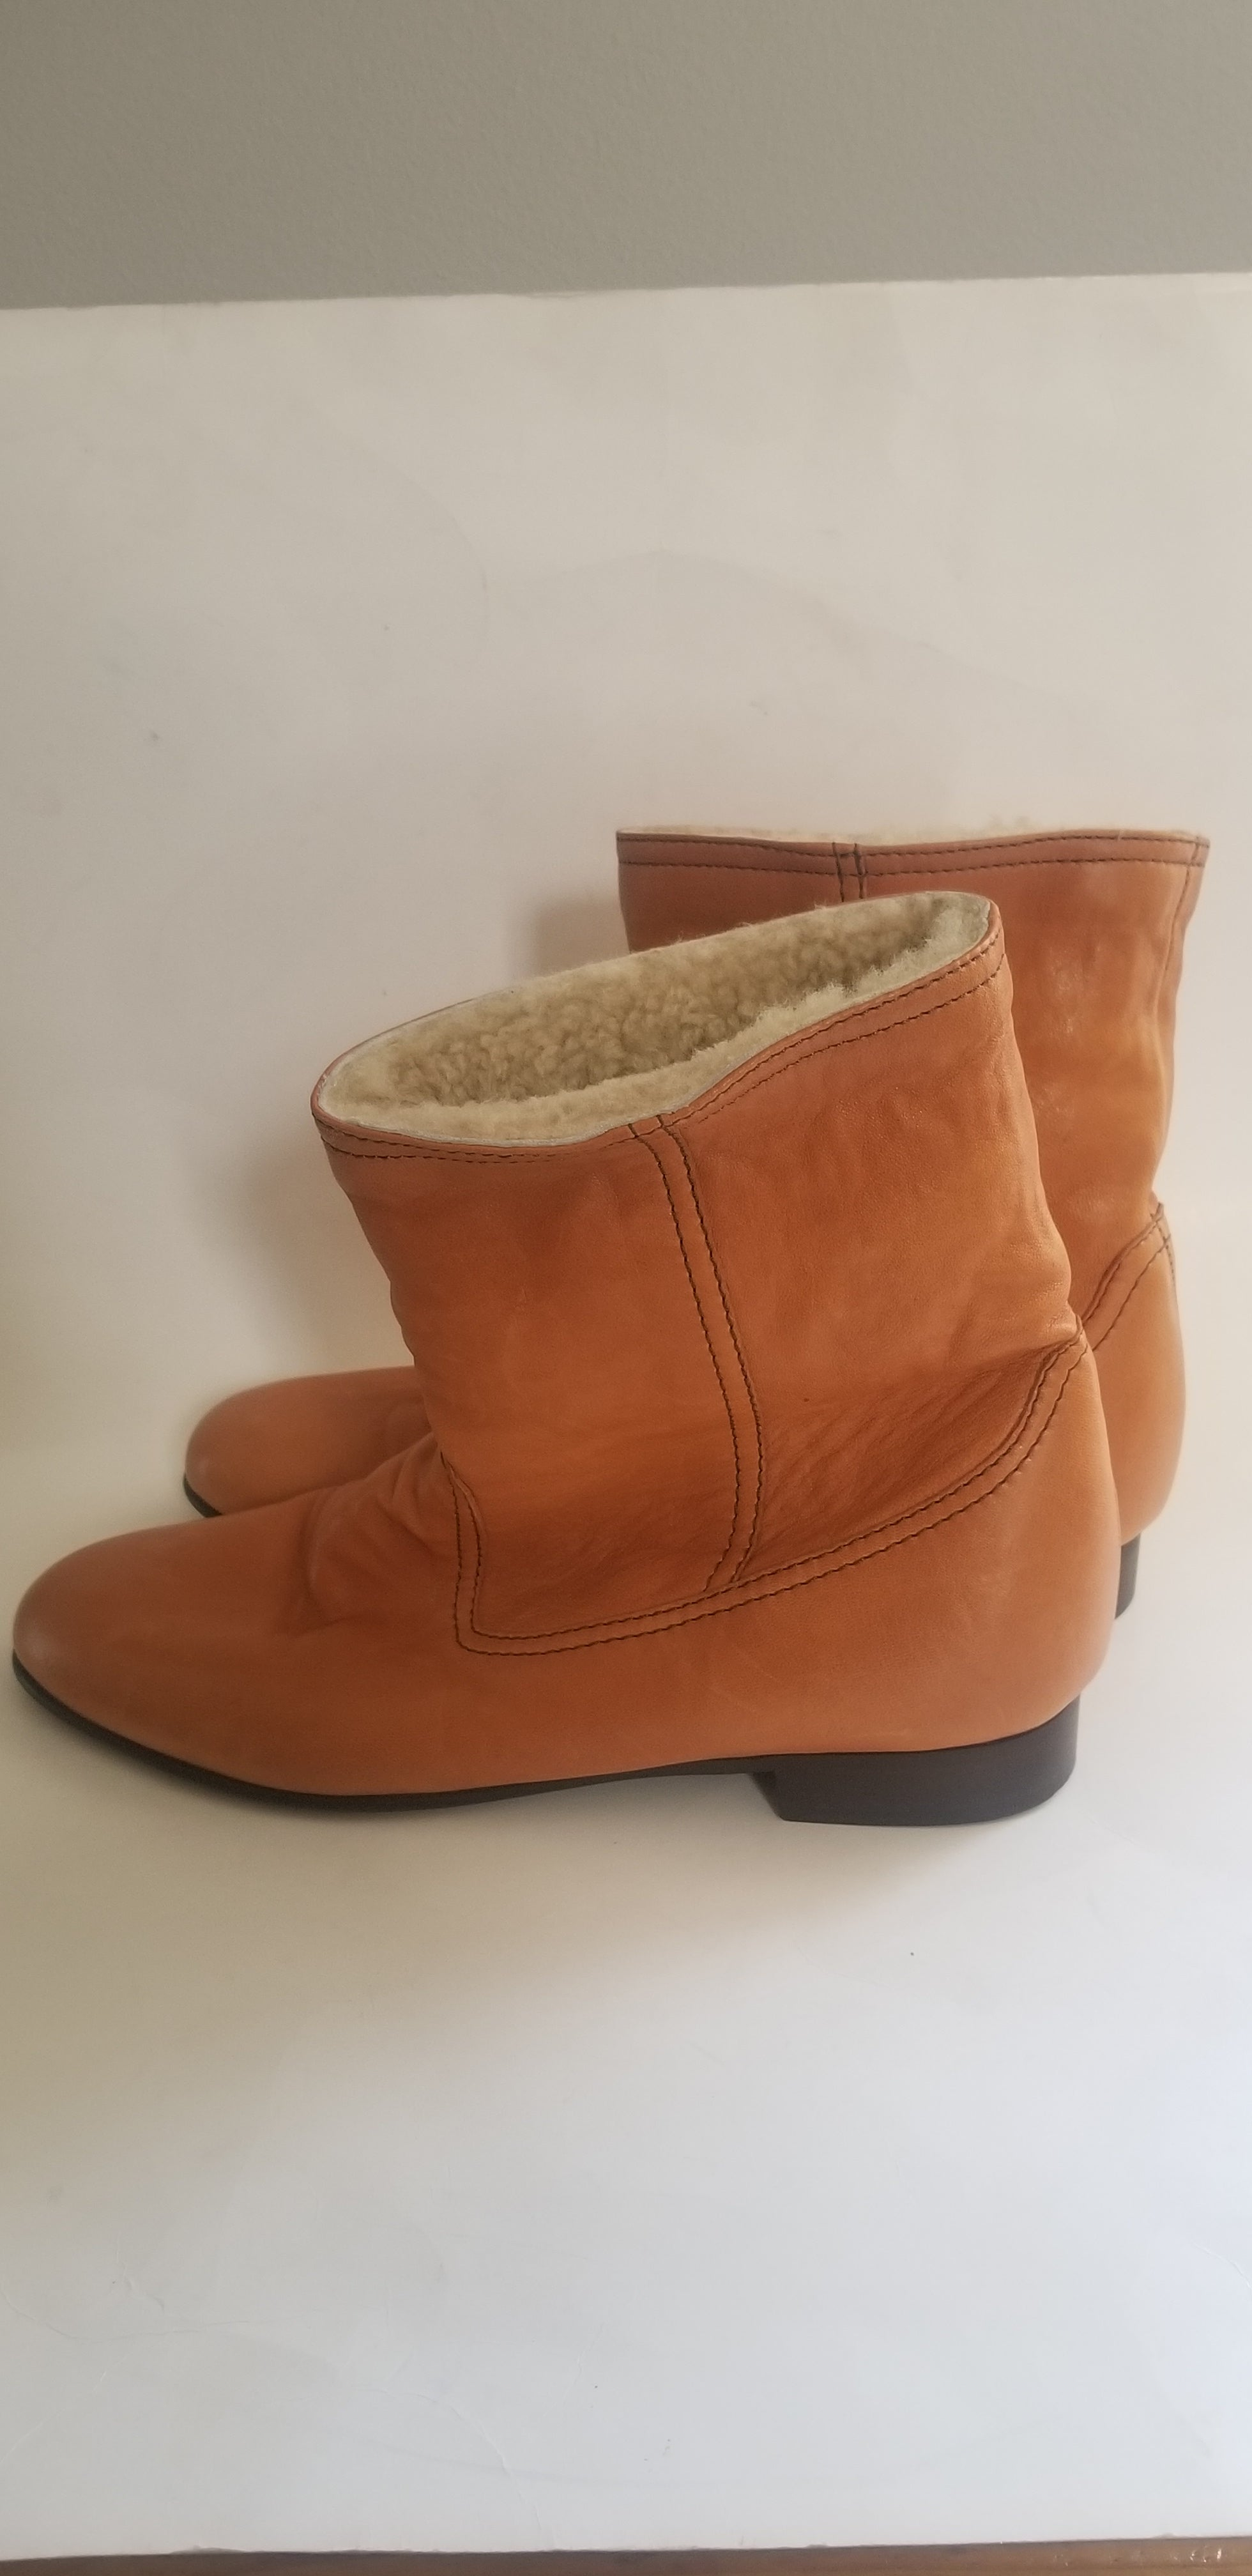 1937 Footwear women's ankle boots brown size 9.5 Made in Italy